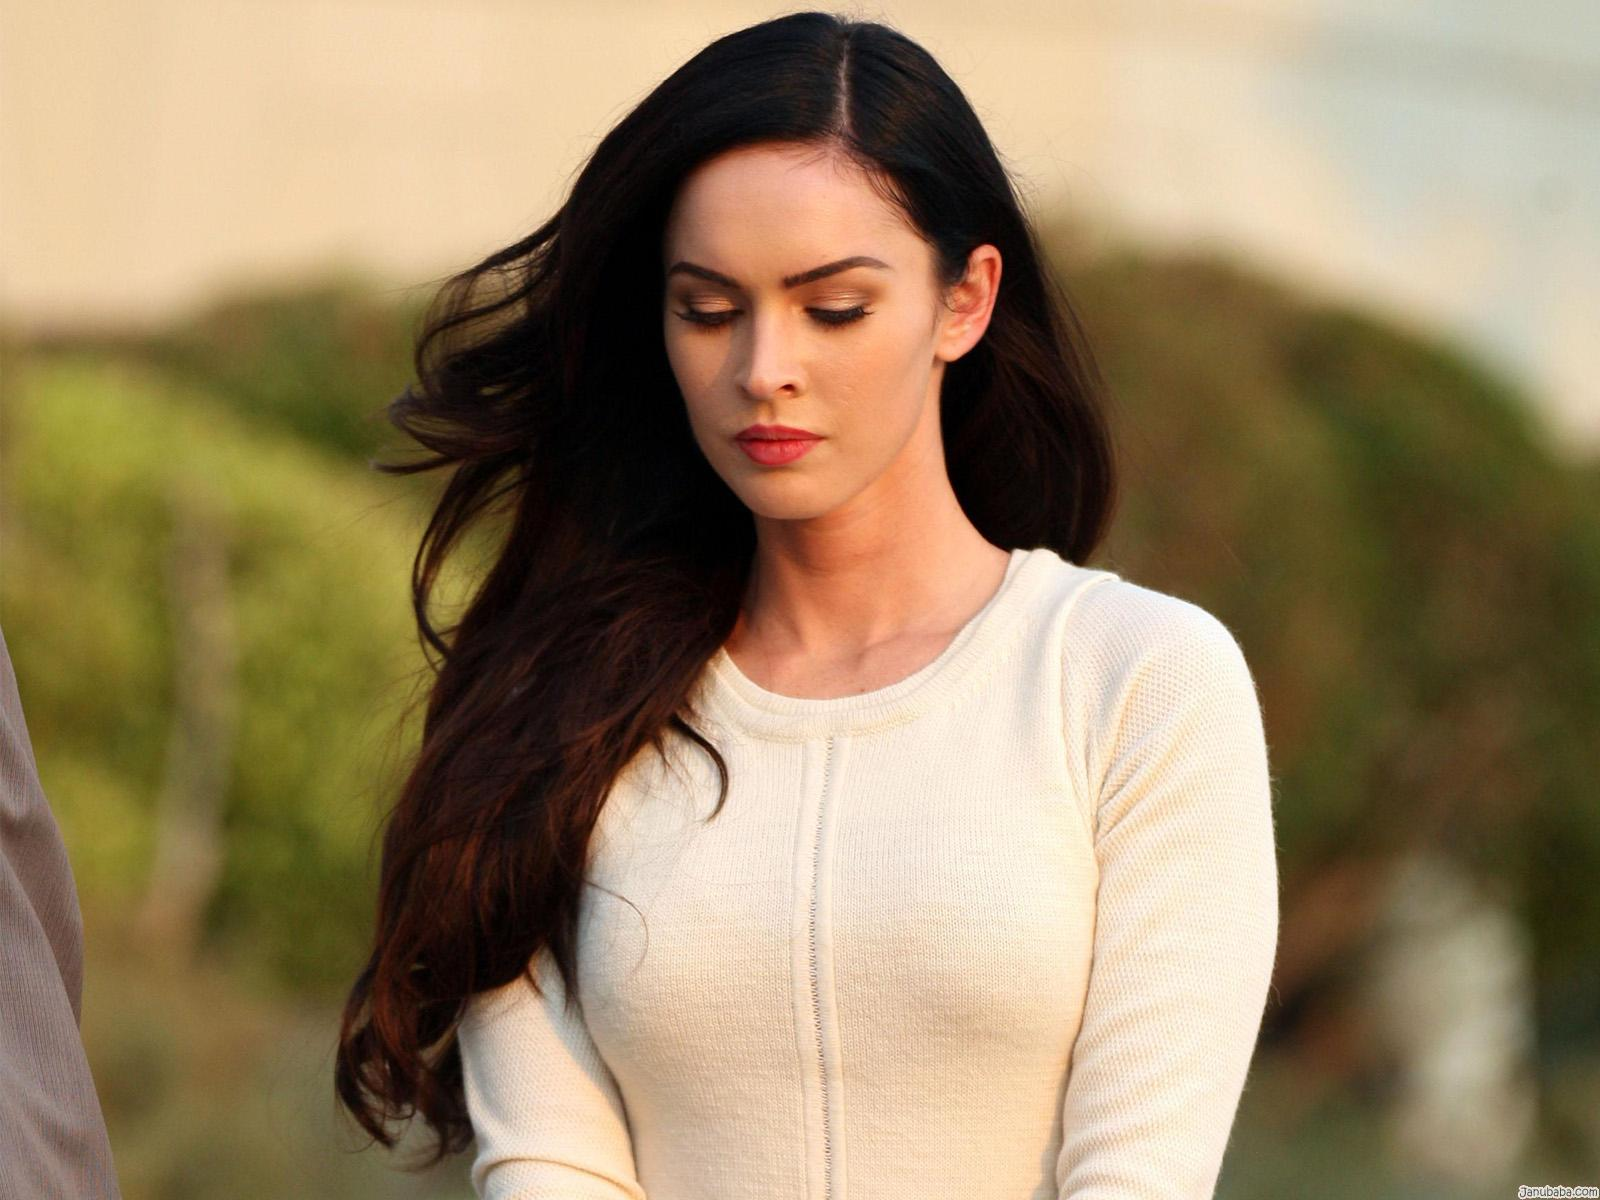 megan fox images megan fox hd wallpaper and background photos (24798804)